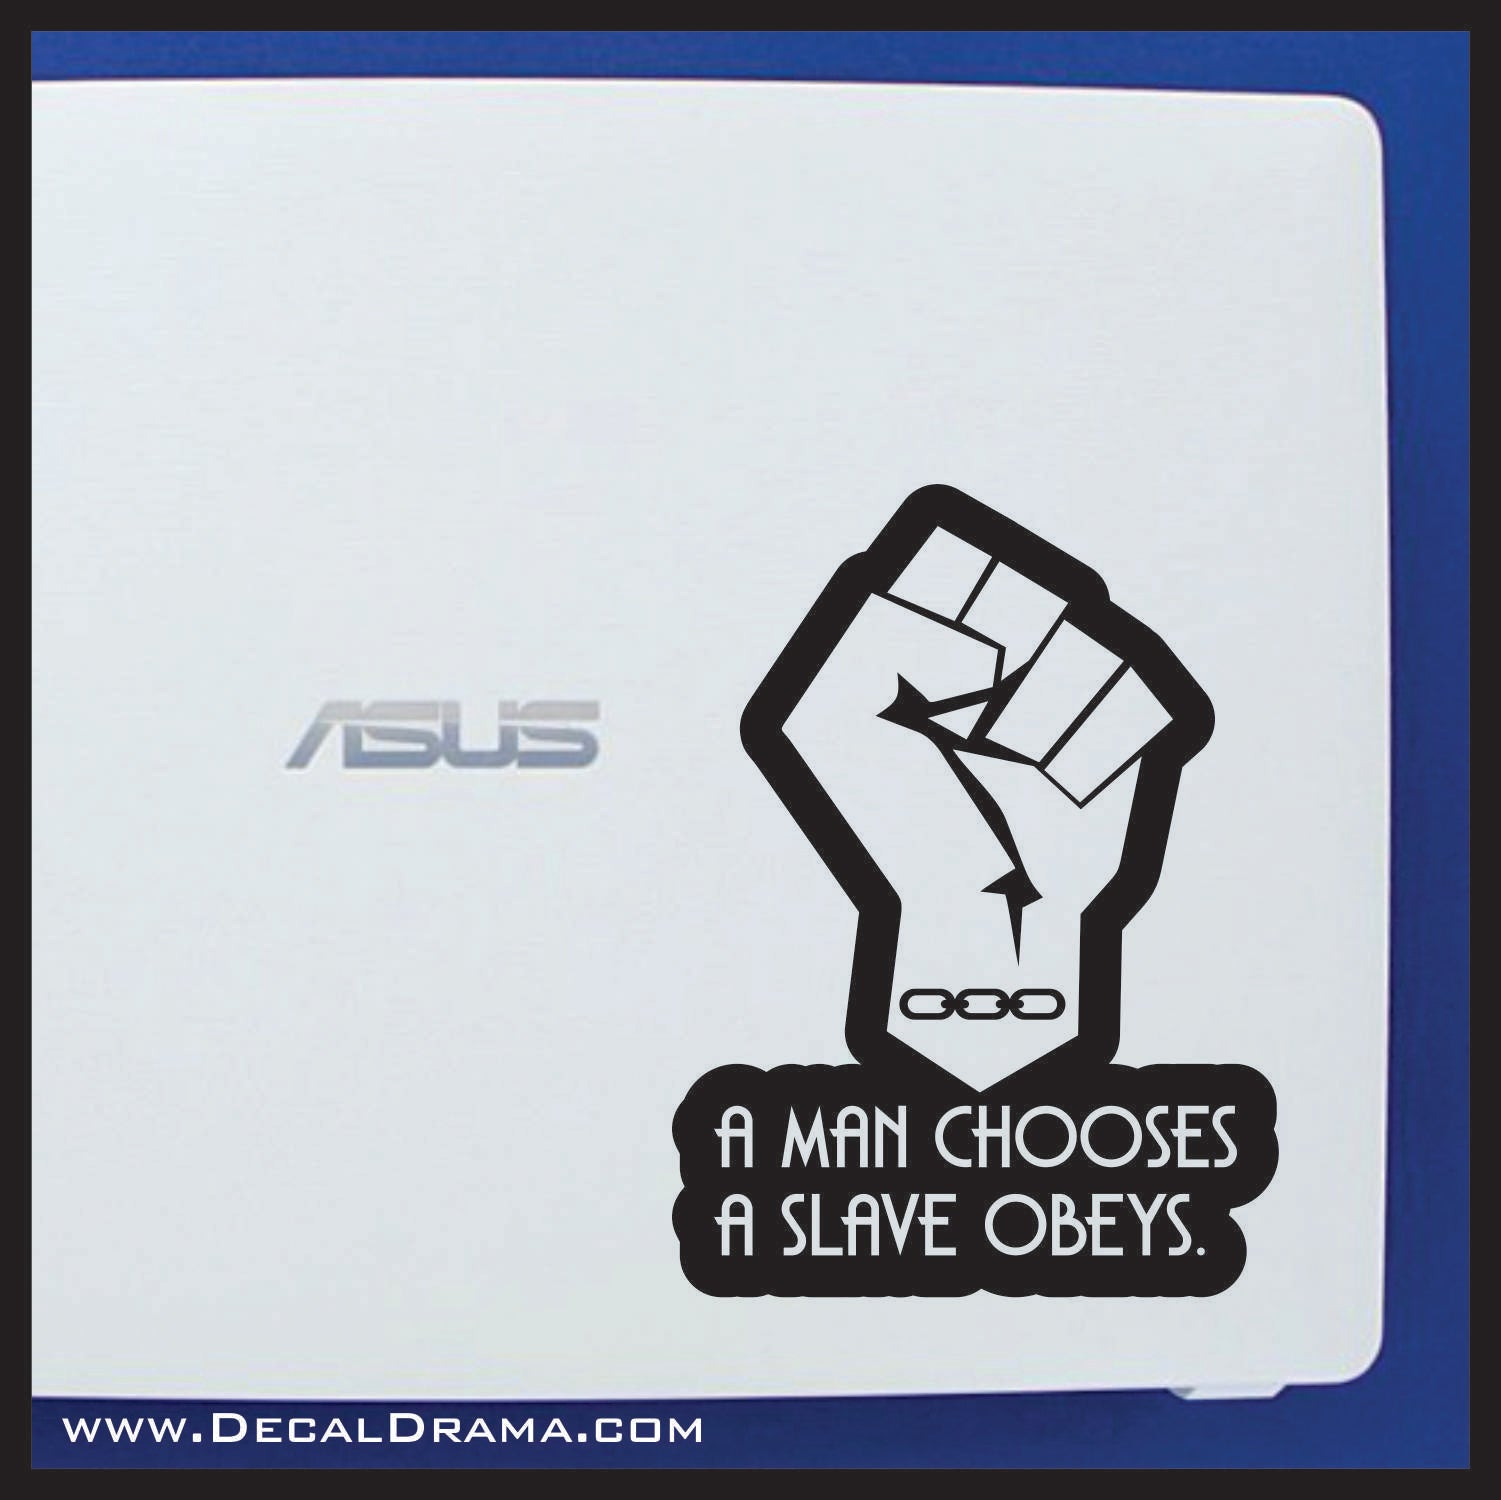 A Man Chooses A Slave Obeys FIST, Bioshock-inspired Vinyl Decal